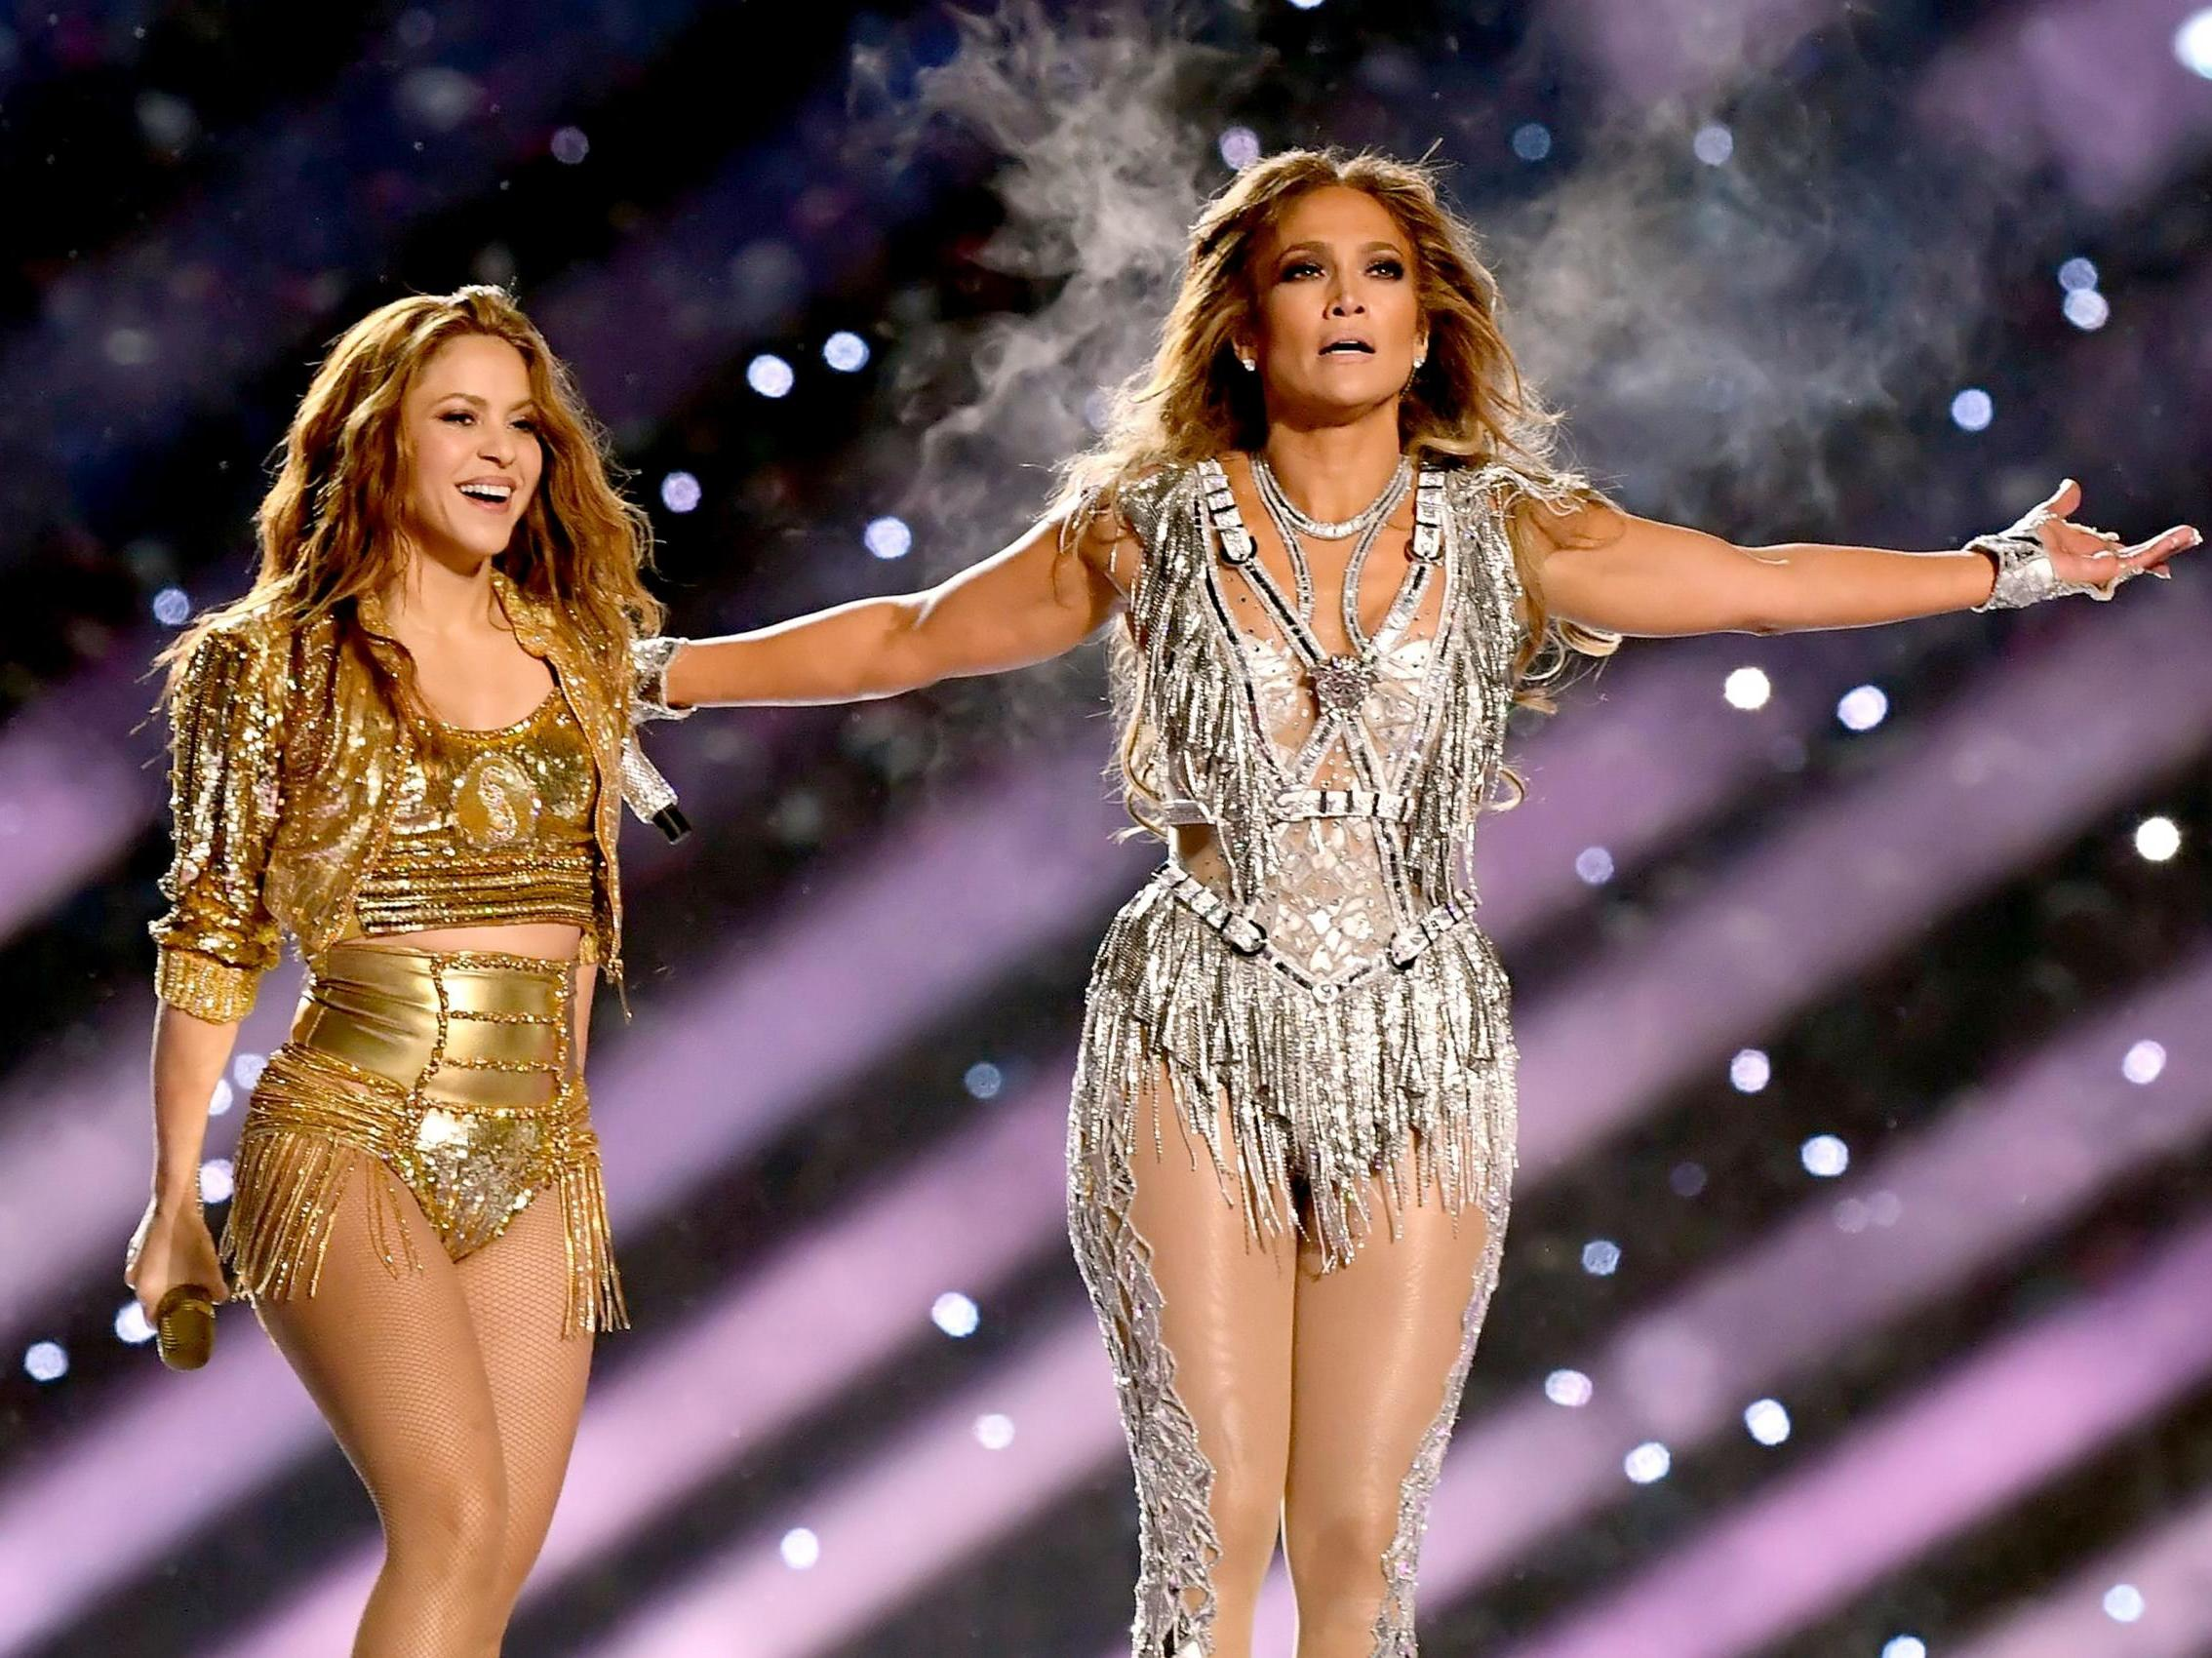 Super Bowl 2020: All Jennifer Lopez and Shakira's outfit changes from their halftime show